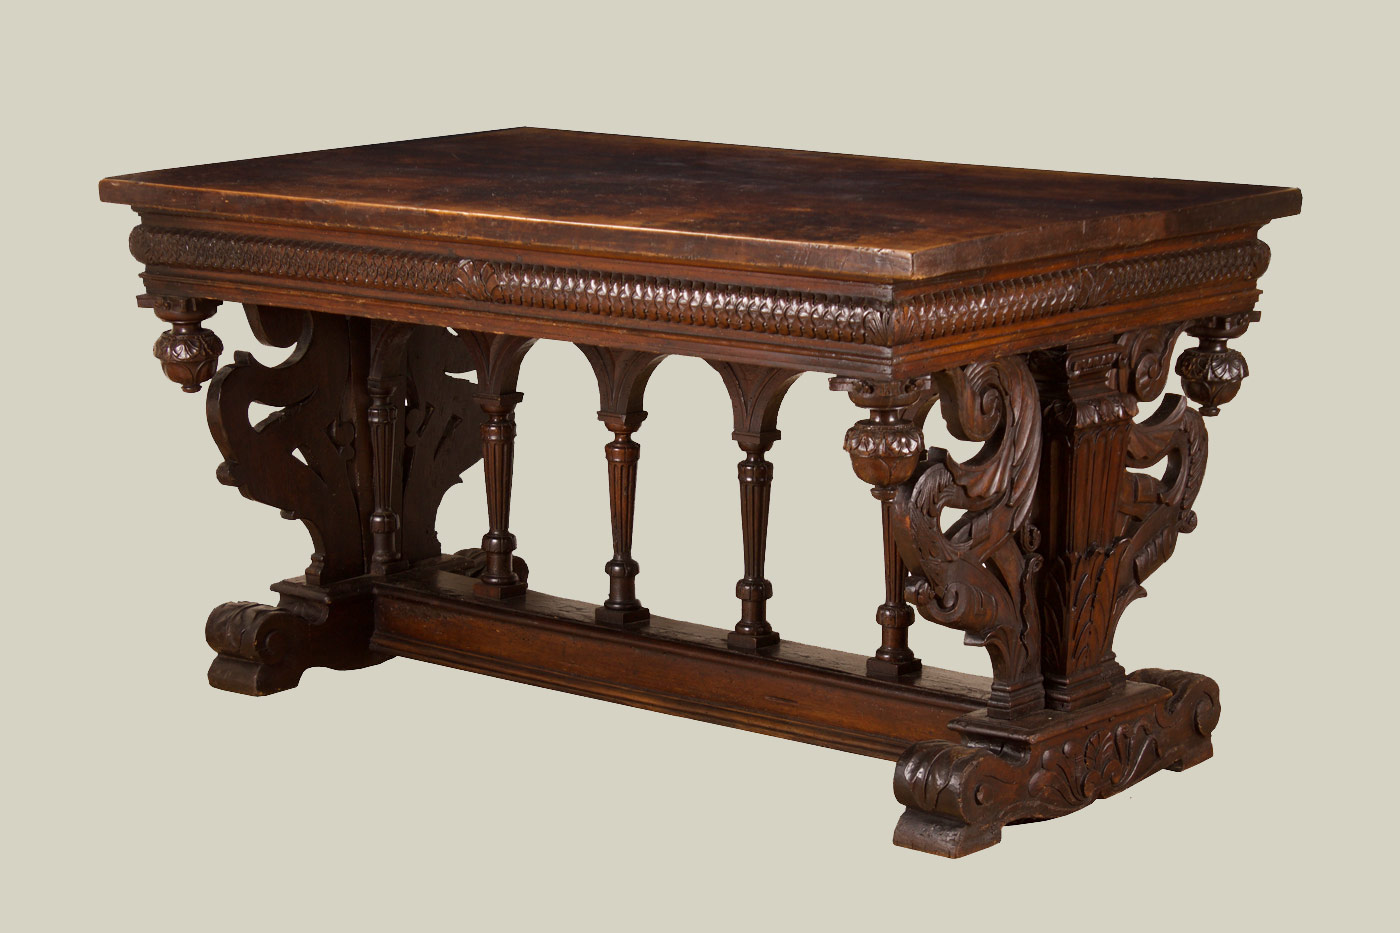 Italian Renaissance Period Walnut Center Table…<s>$55,000</s> / <b>$29,000</b>